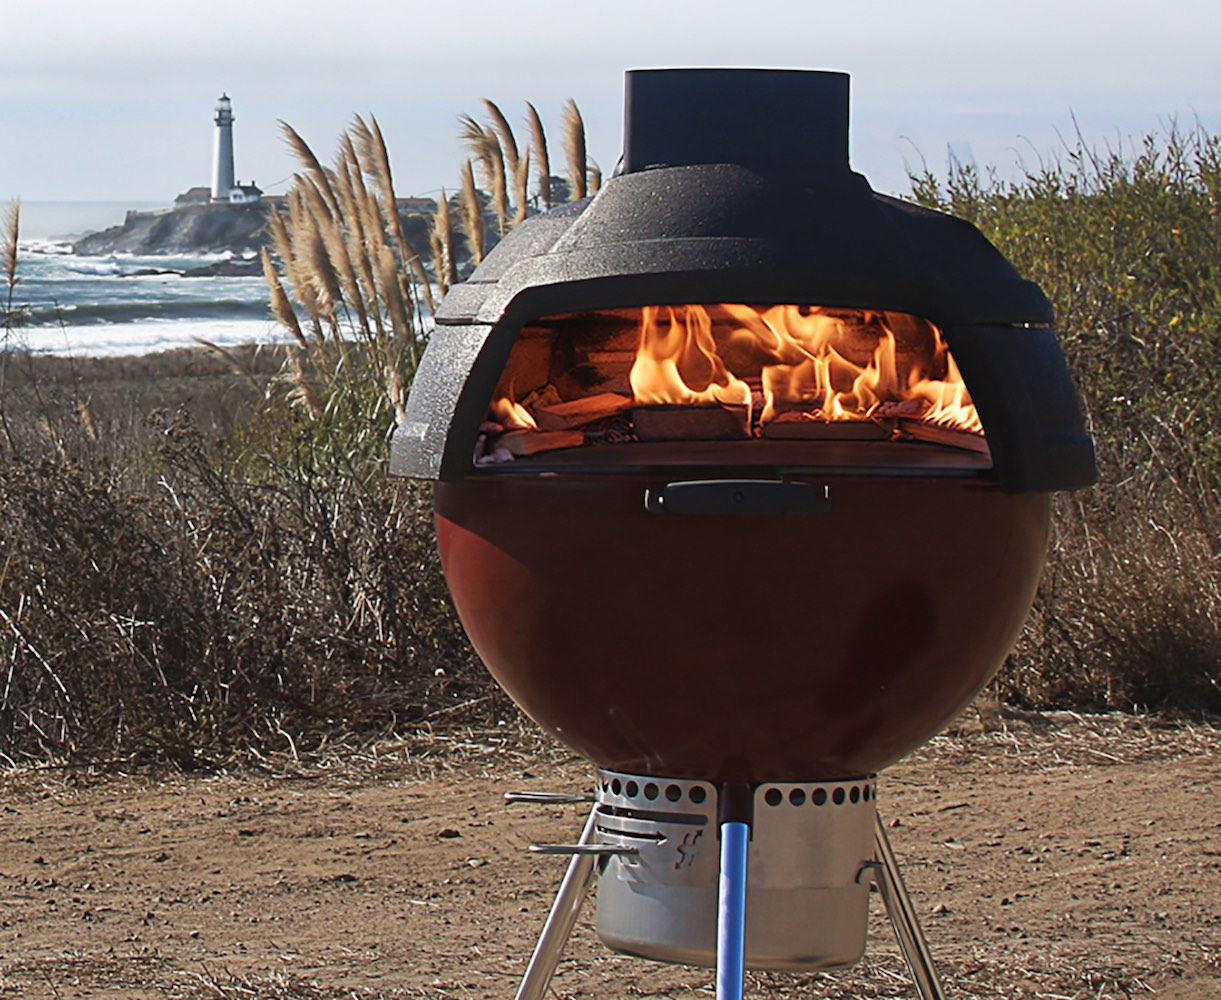 Mobile Brick Ovens. Durable Pizza Stones. Exceptionally Made.